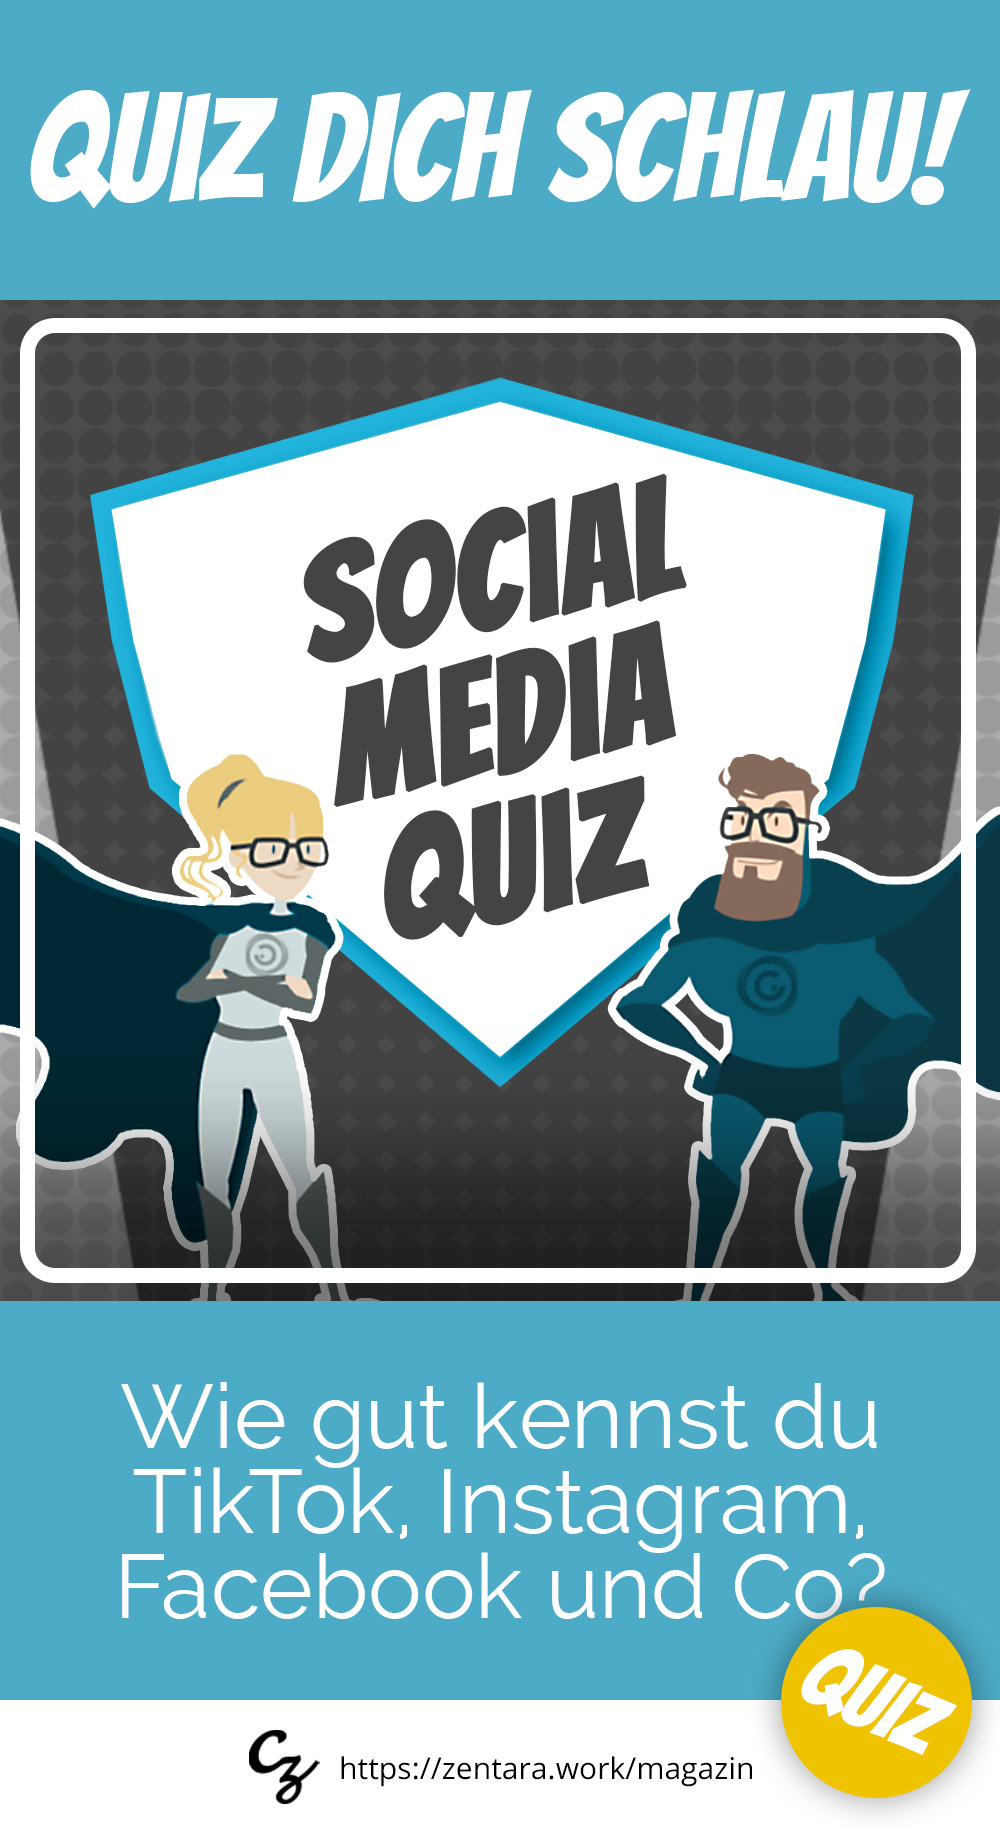 Social Media Quiz: Wie gut kennst du TikTok, Instagram und Co?